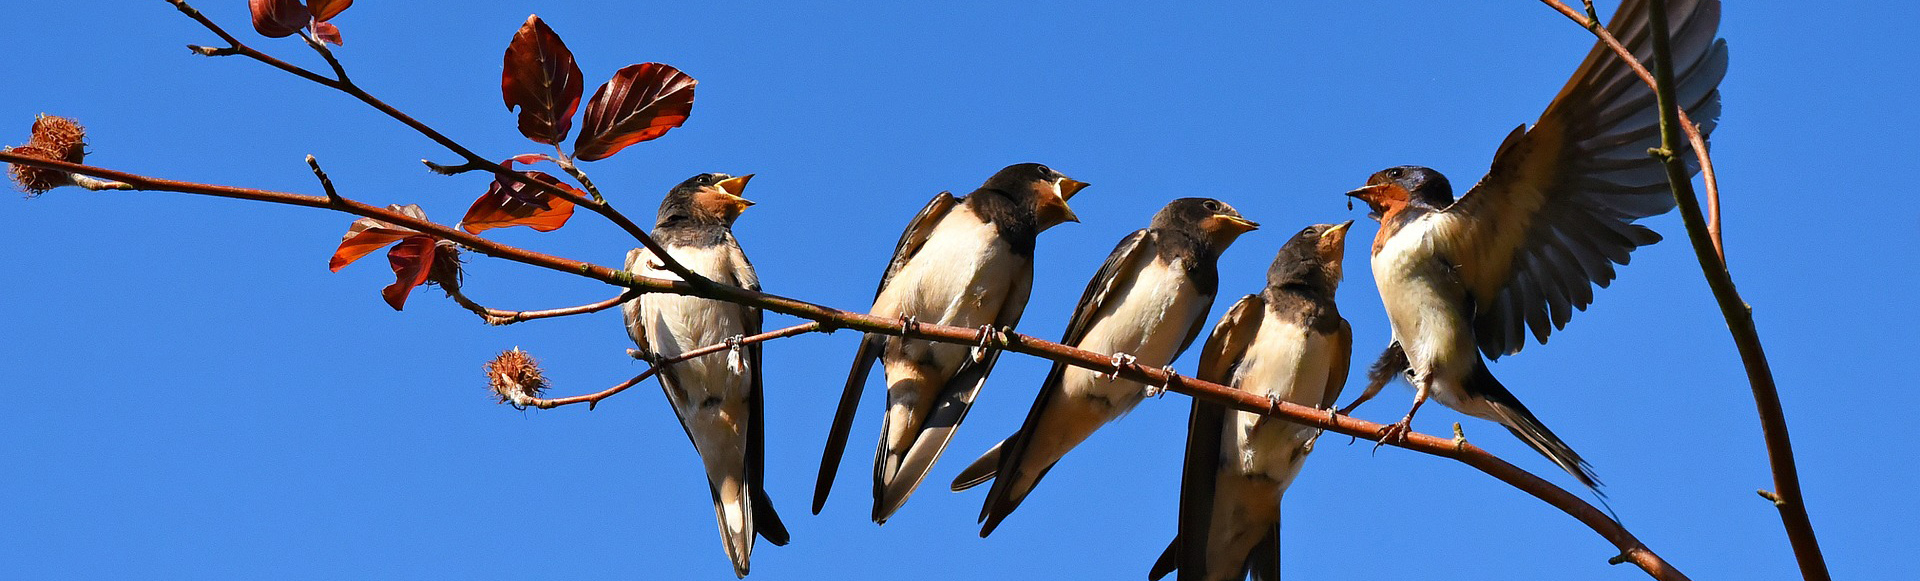 Beneficial Management Practices of Ontario's Swallows